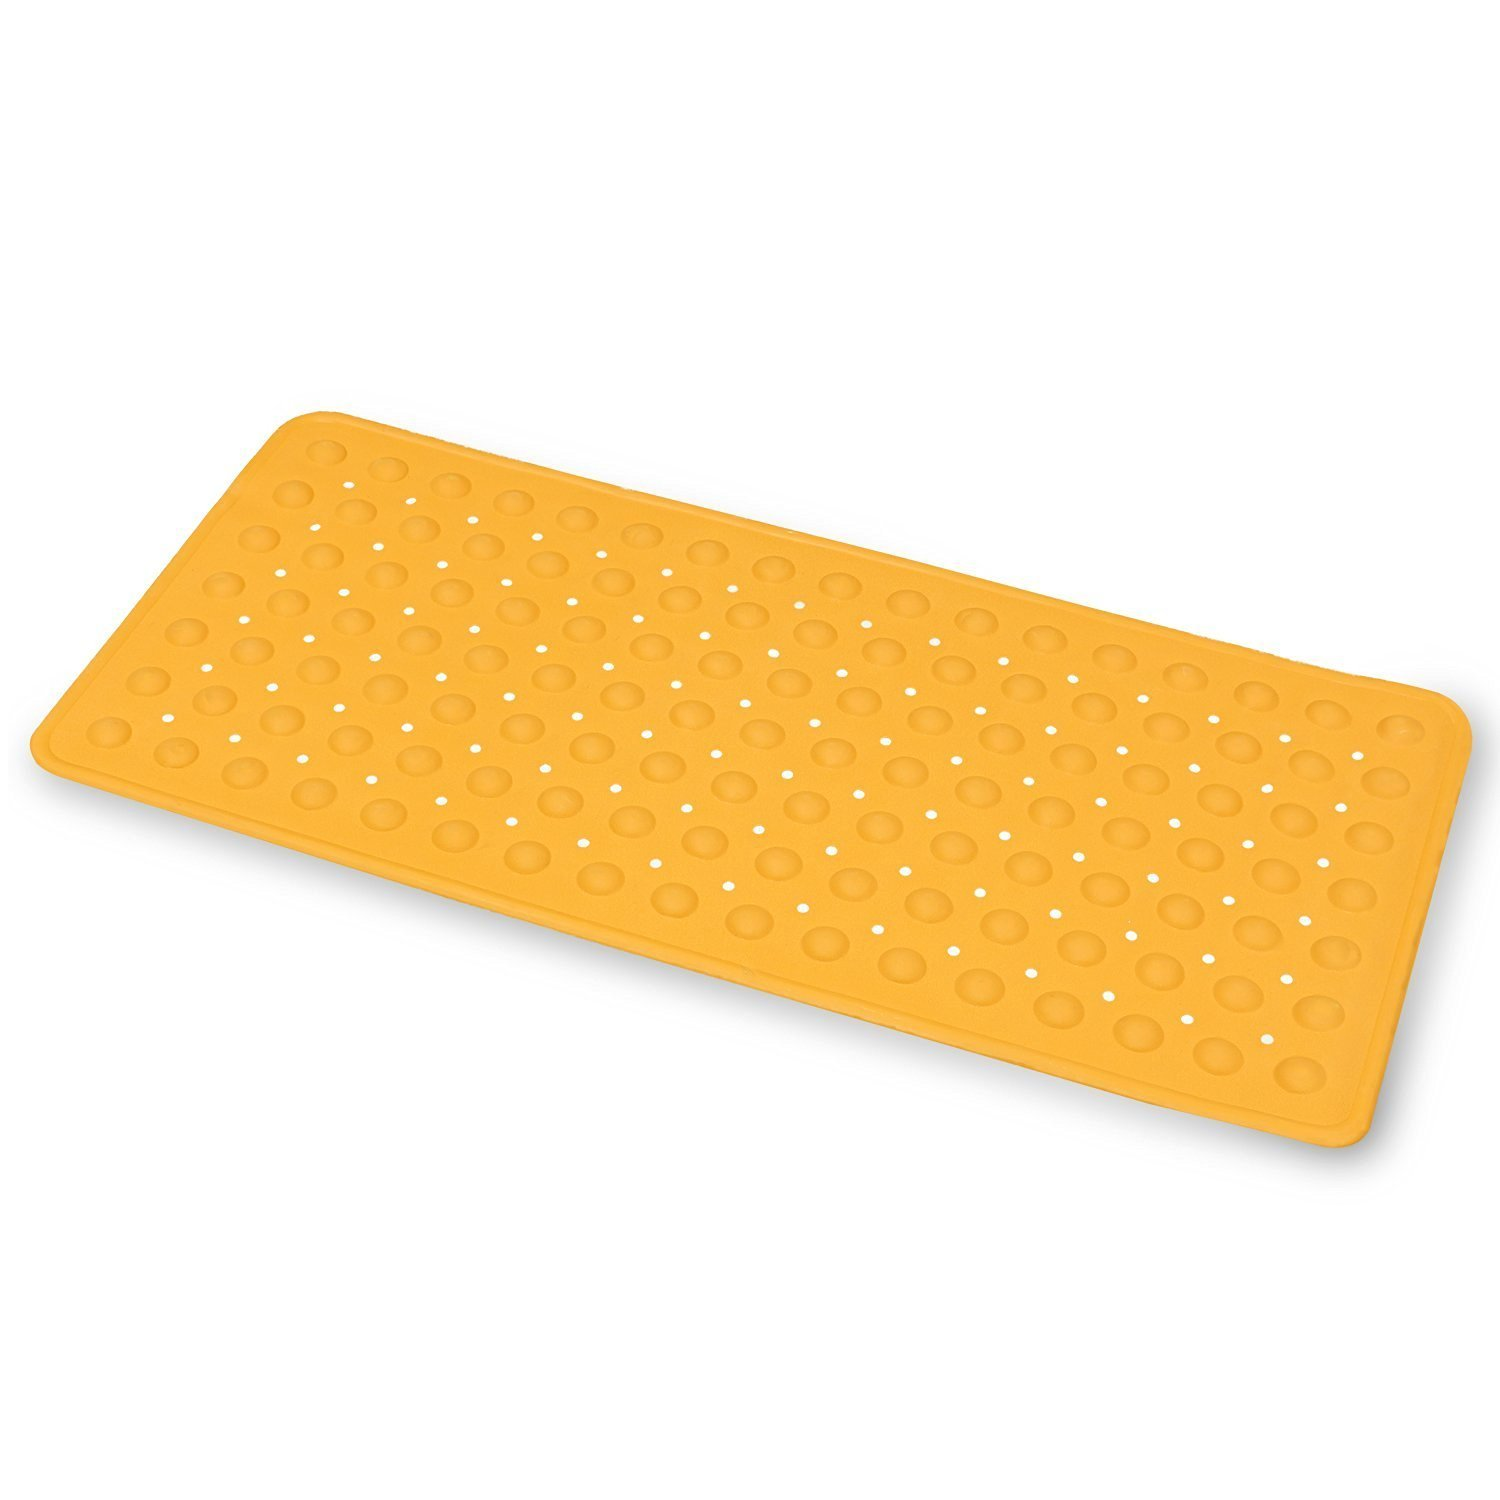 Emmzoe Bubble Rubber Anti-Slip Bath Mat 14 x 30 Inches Kids & Baby Friendly - Natural Rubber, Non-Toxic, Eco-Friendly, Mildew and Stain Resistant (Orange)